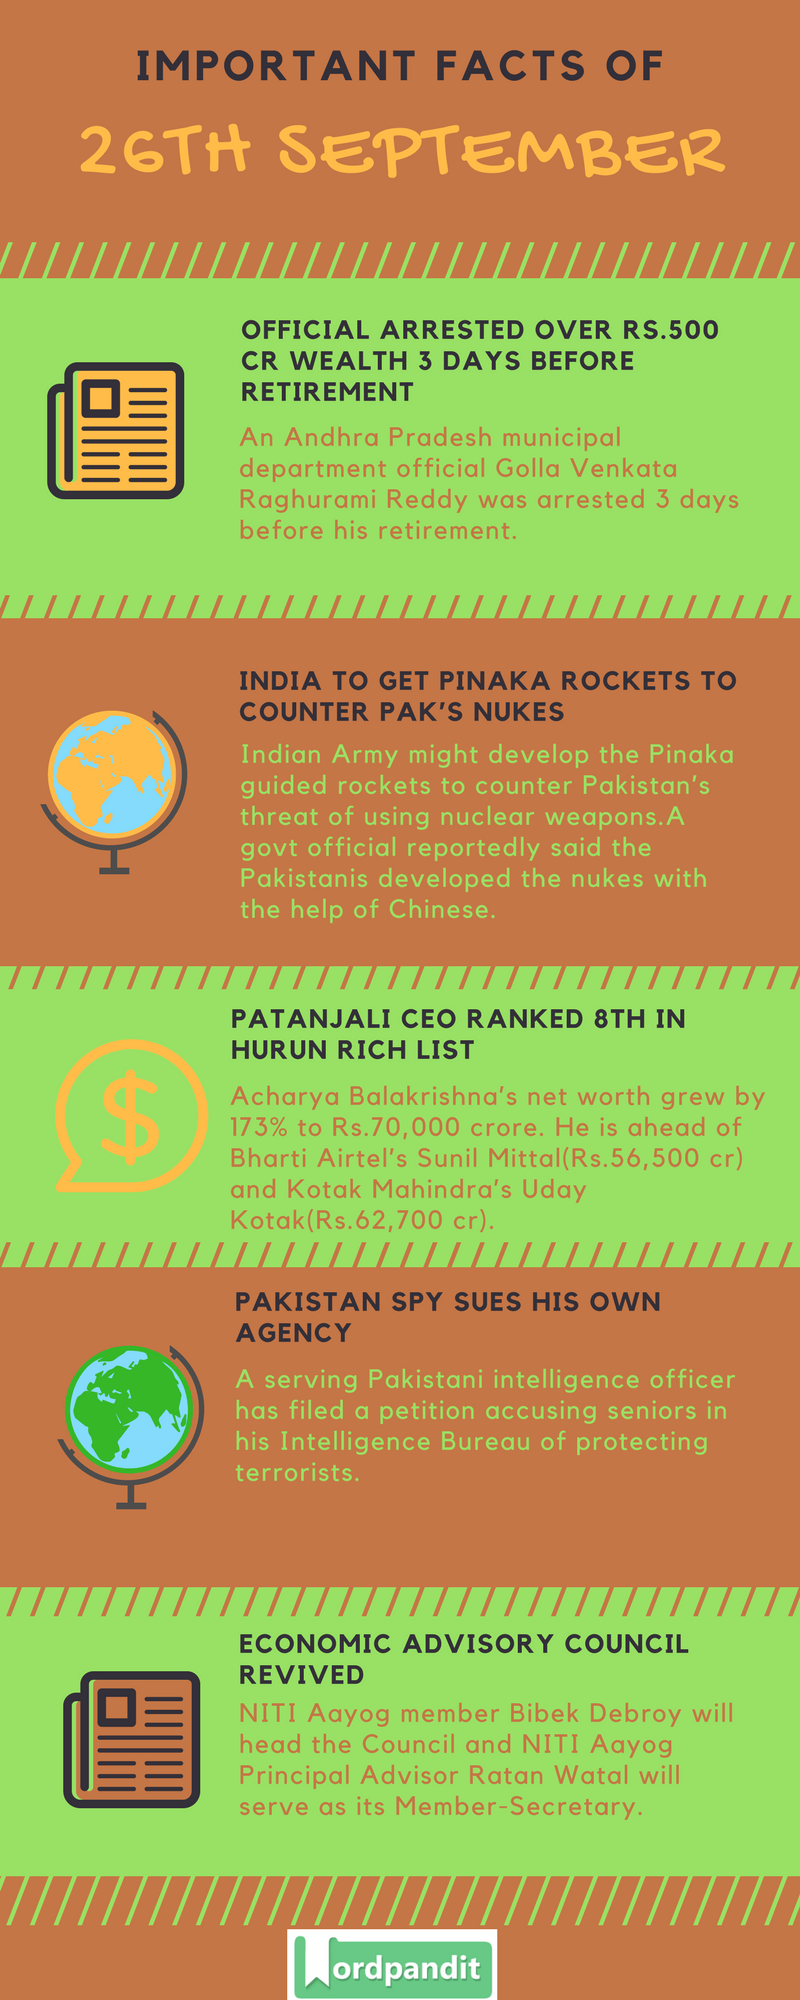 Daily-Current-Affairs-26-september-2017-Current-Affairs-Quiz-september-26-2017-Current-Affairs-Infographic